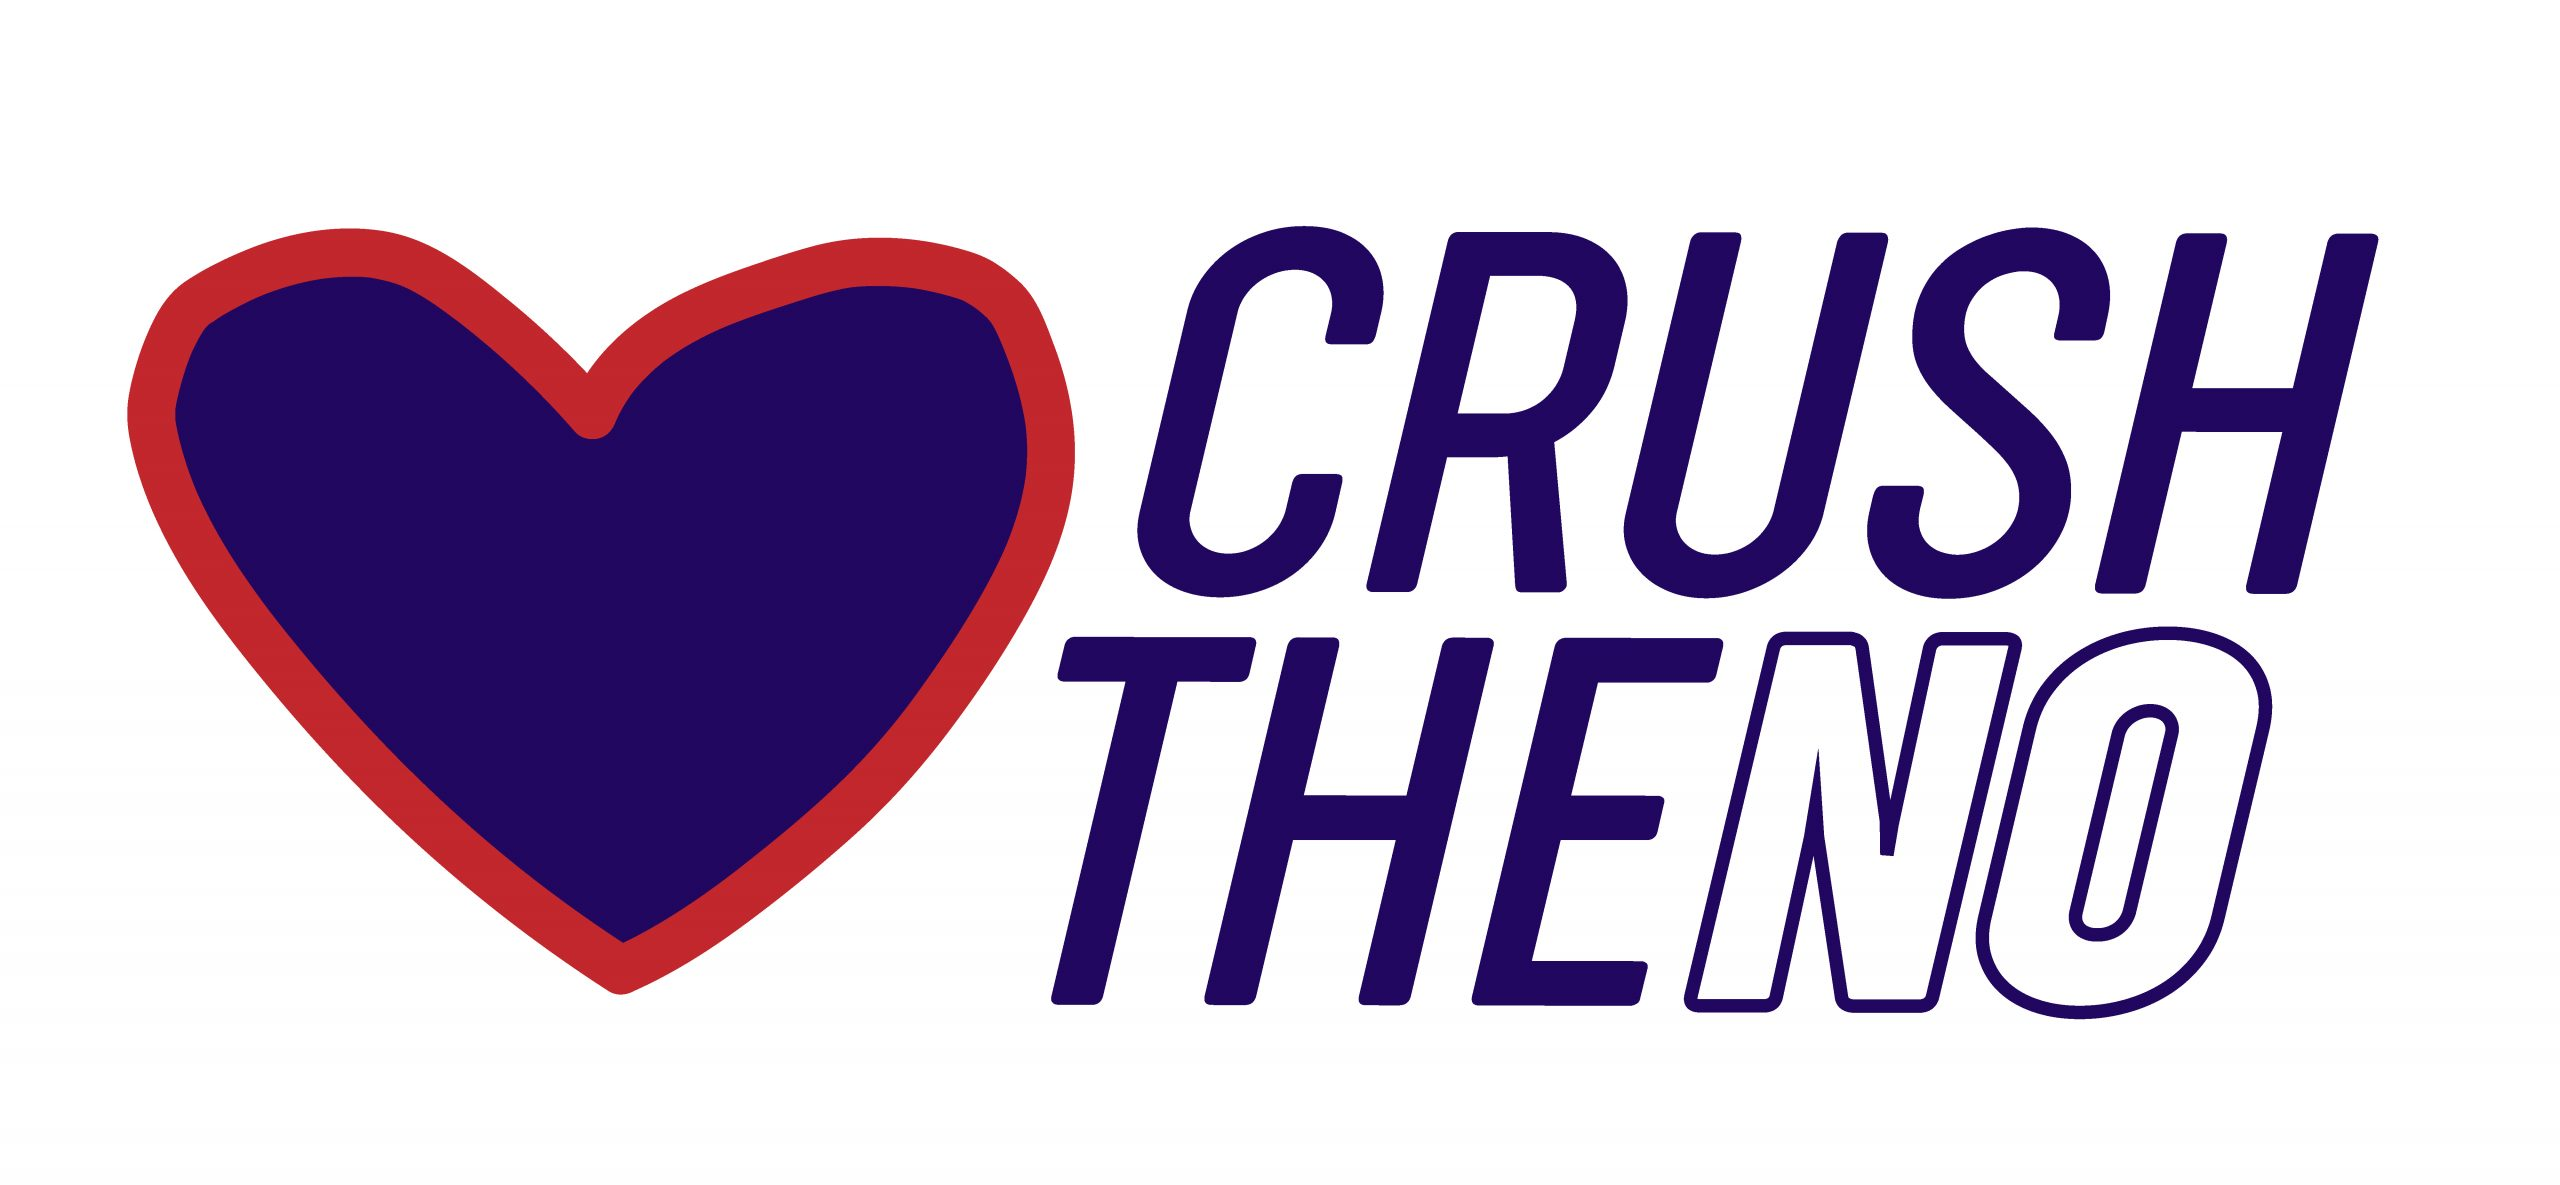 Heart shape next to Crush The No logo. An image depicting love conquers all.